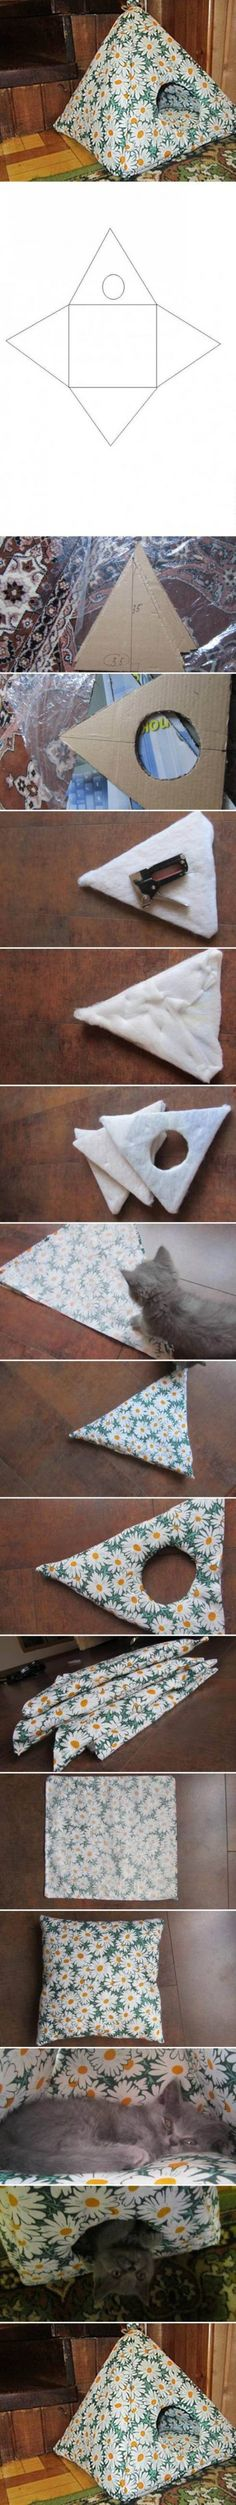 diy-aconchegante-cat-tenda-1